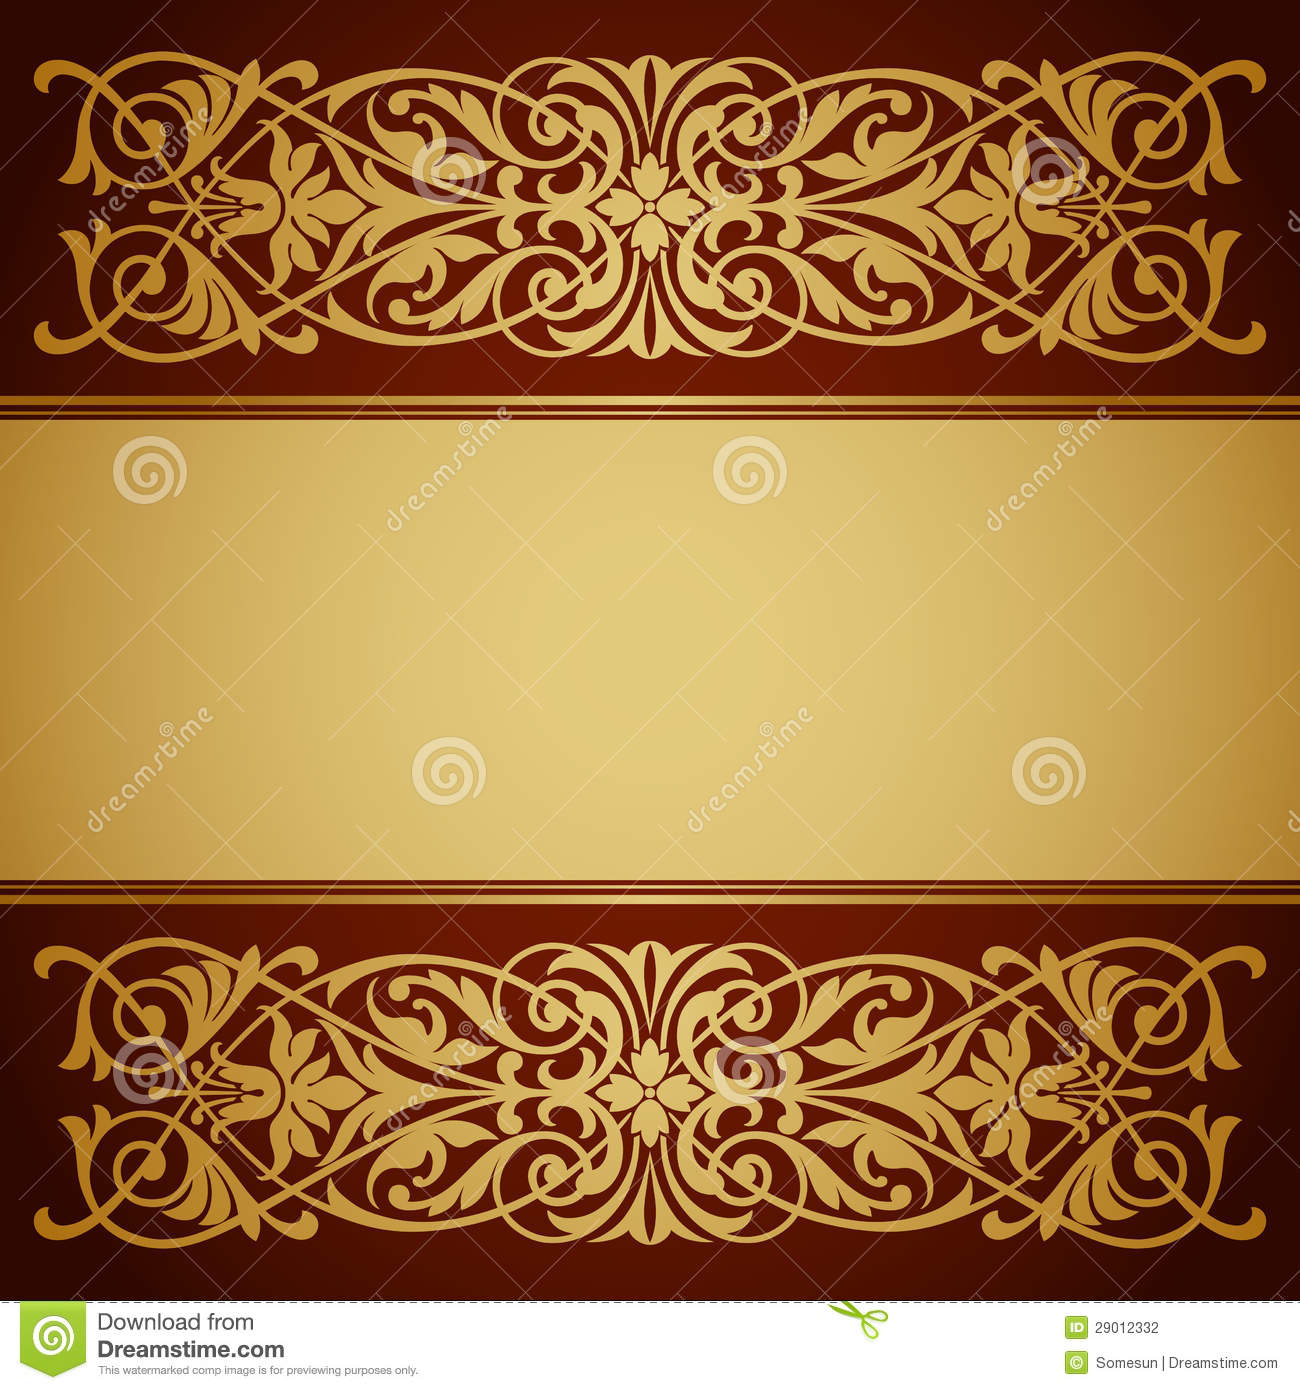 Vintage Gold Borders and Frames